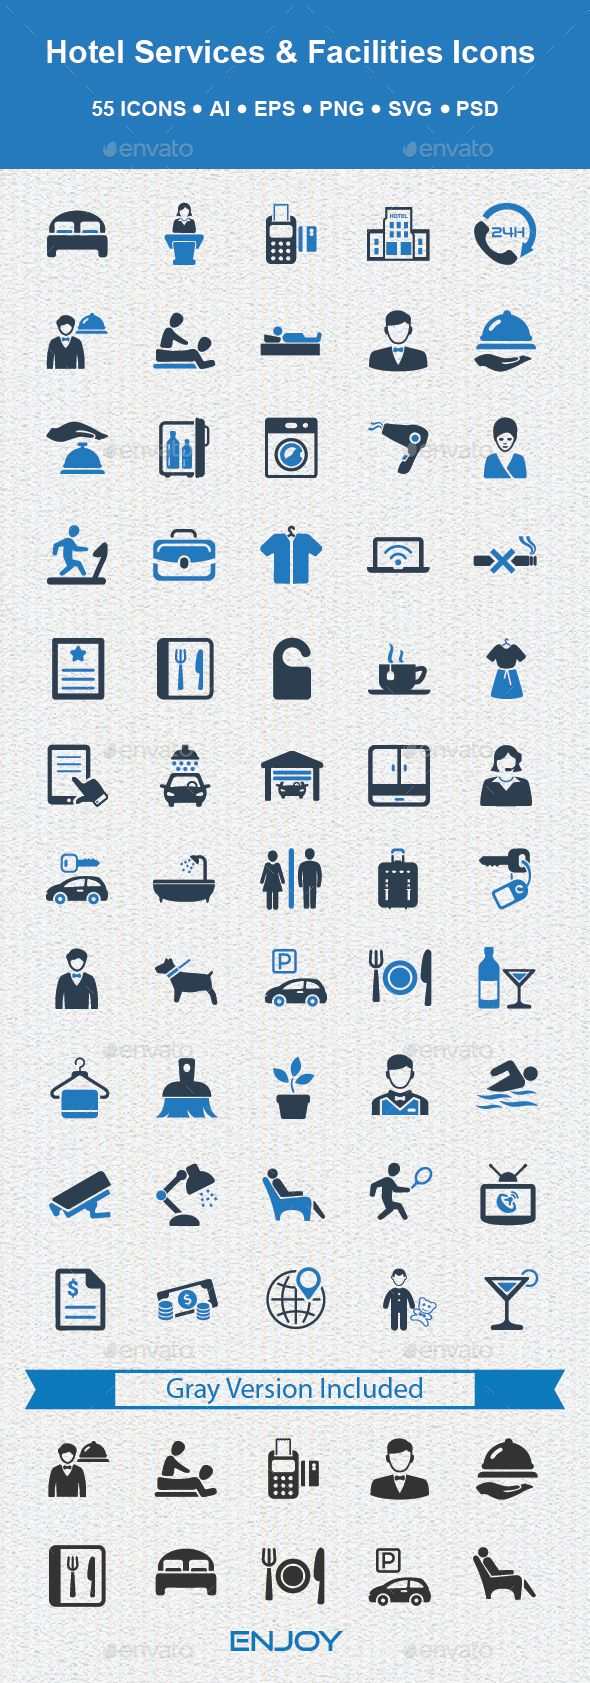 Hotel Services & Facilities Icons — Photoshop PSD #icons #swimming pool • Available here → https://graphicriver.net/item/hotel-services-facilities-icons/14976372?ref=pxcr